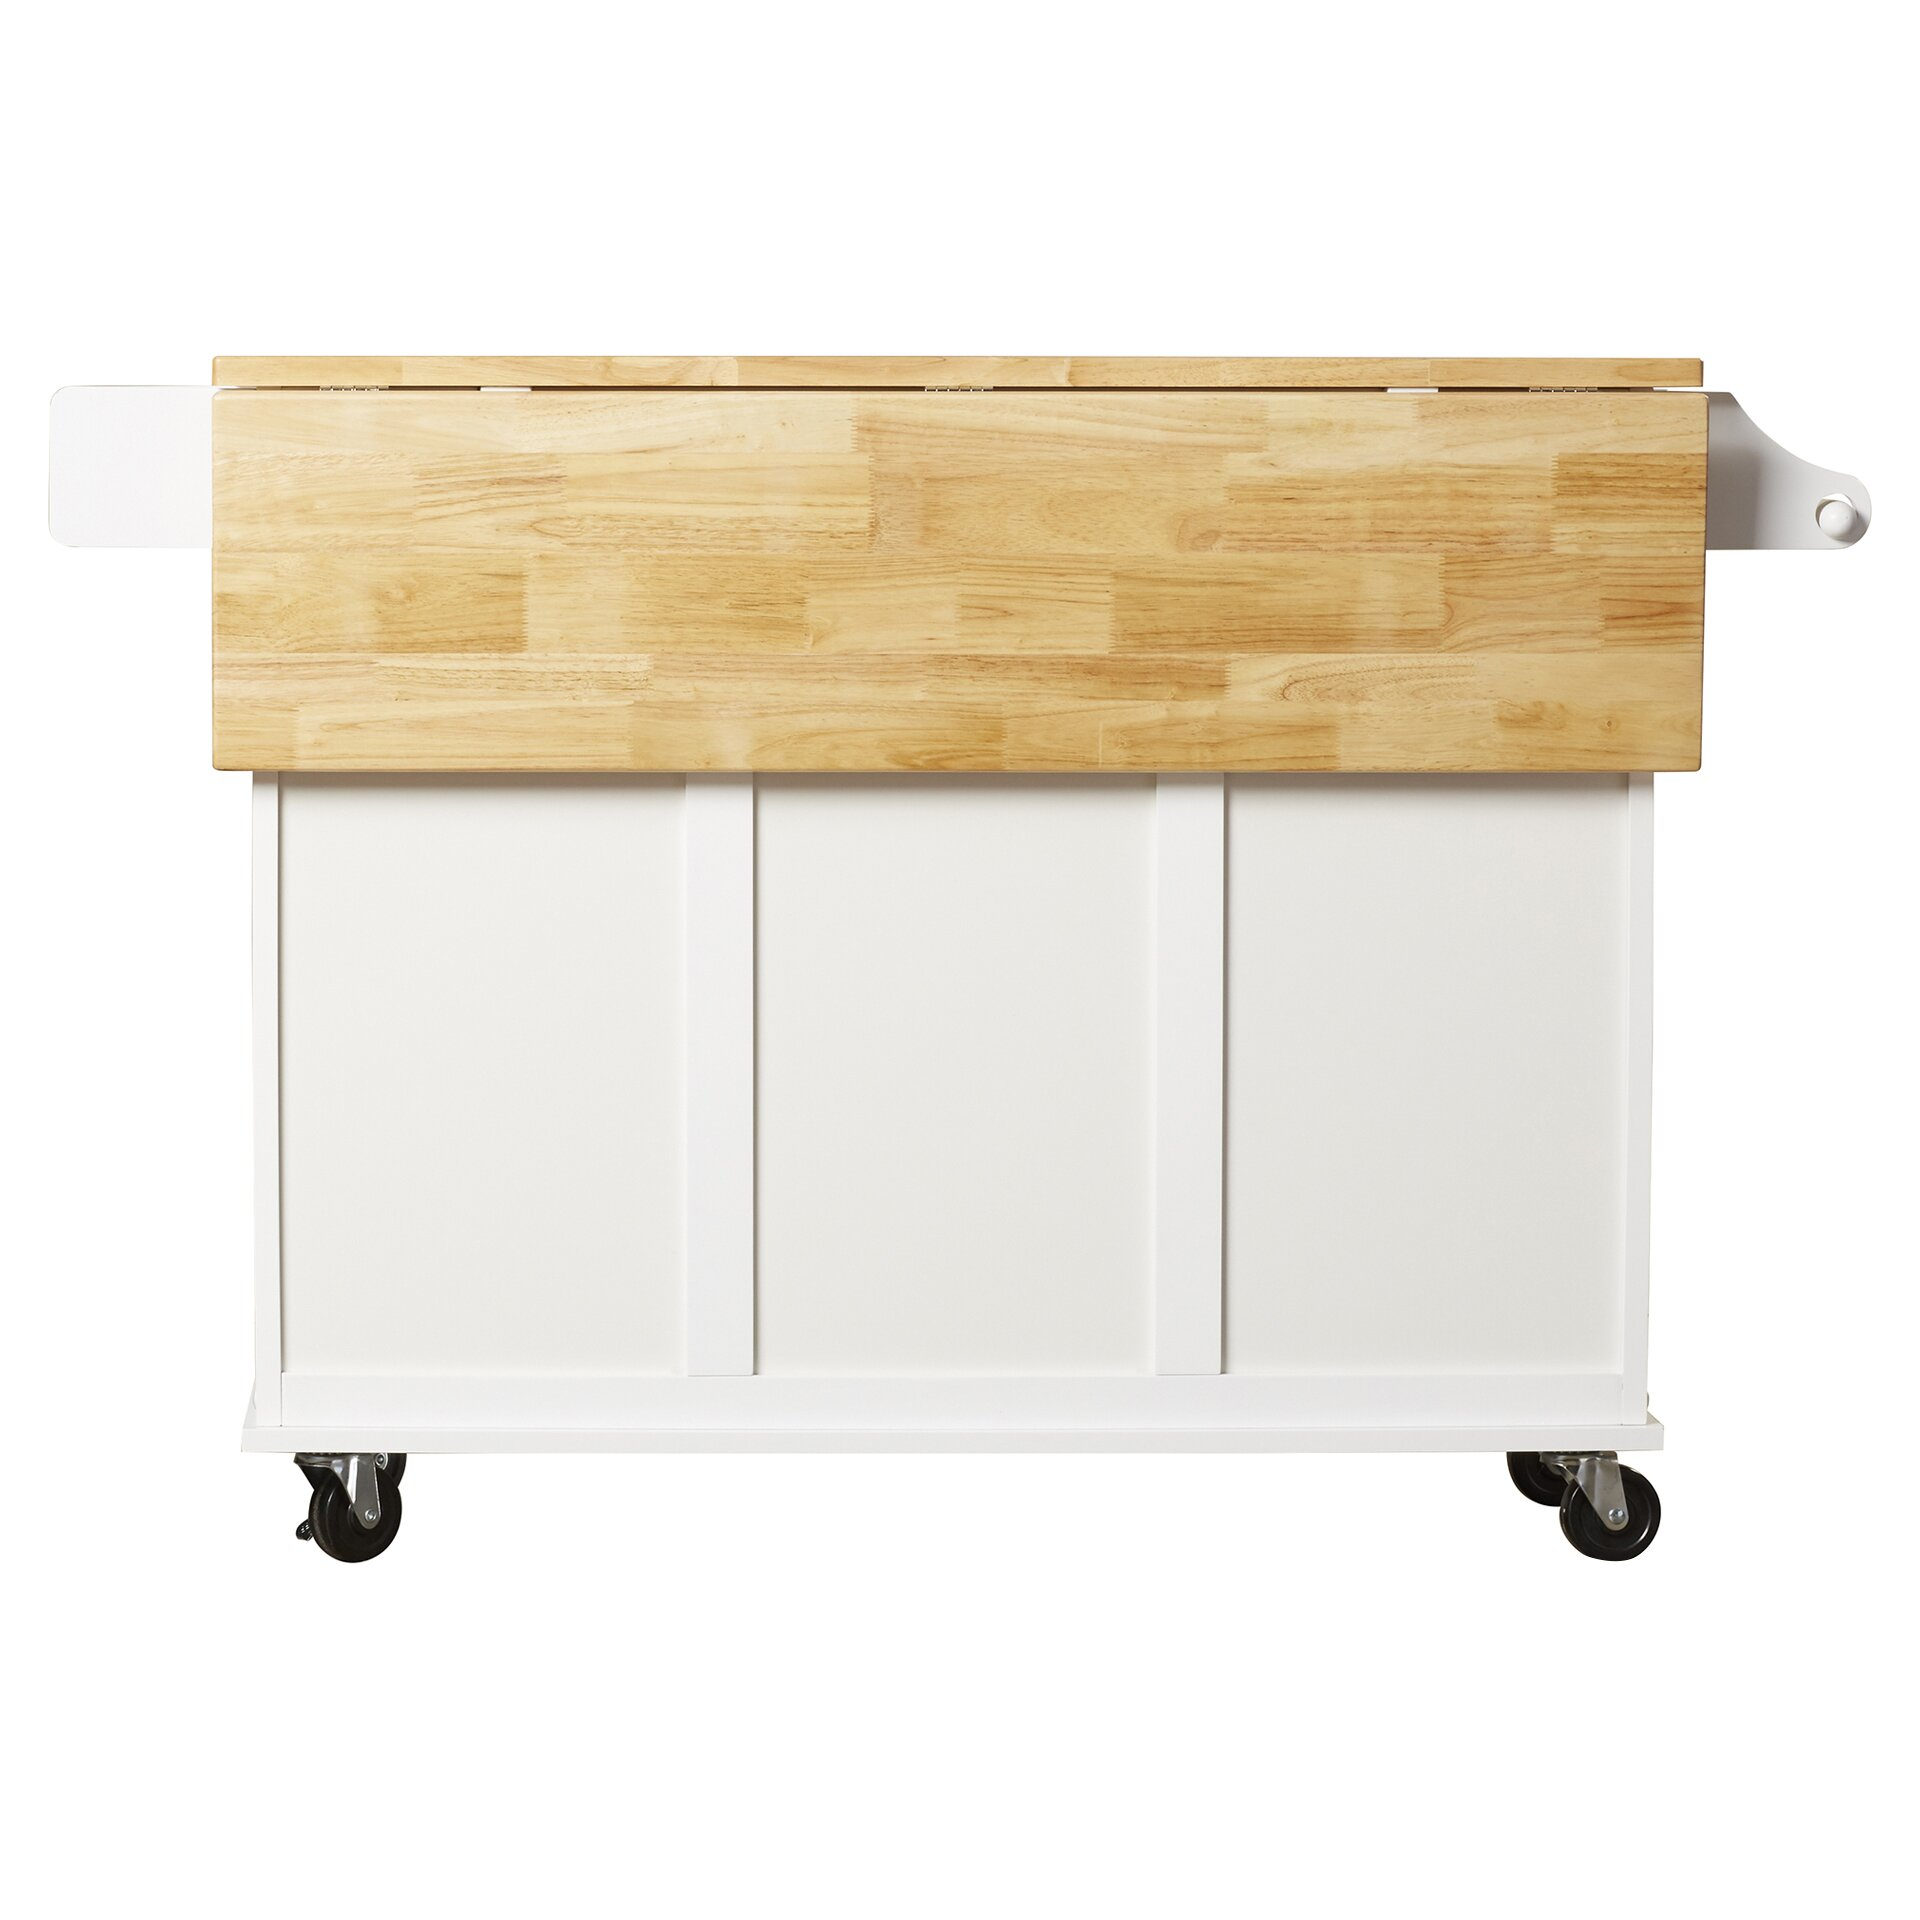 darby home co arpdale kitchen island with wood top designing a kitchen domestic imperfection